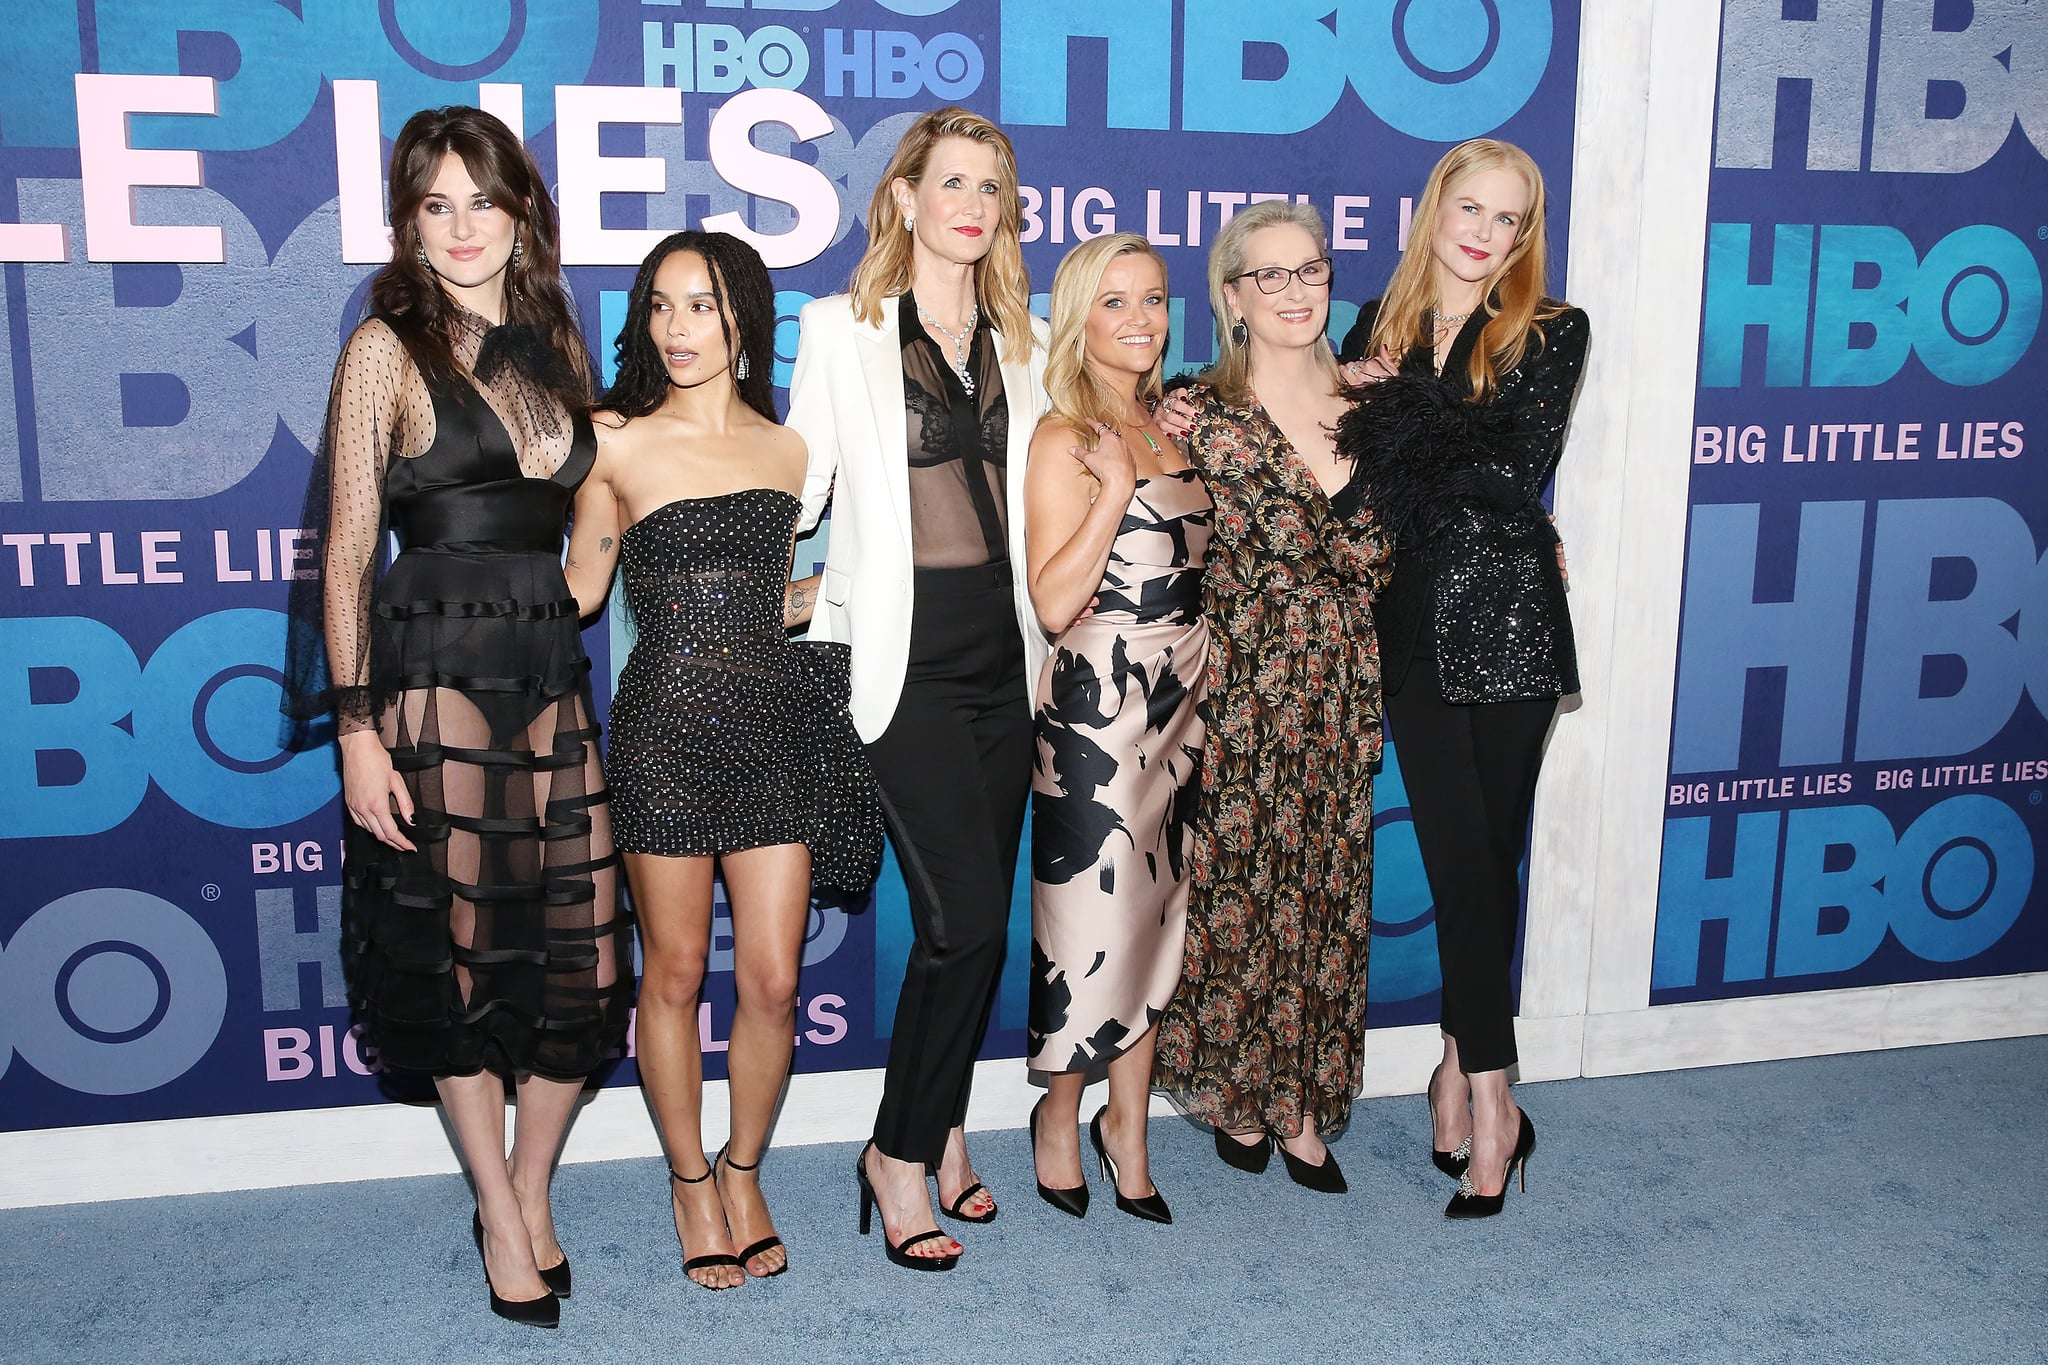 NEW YORK, NEW YORK - MAY 29: (L-R) Shailene Woodley, Zoe Kravitz, Laura Dern, Reese Witherspoon, Meryl Streep and Nicole Kidman attend the